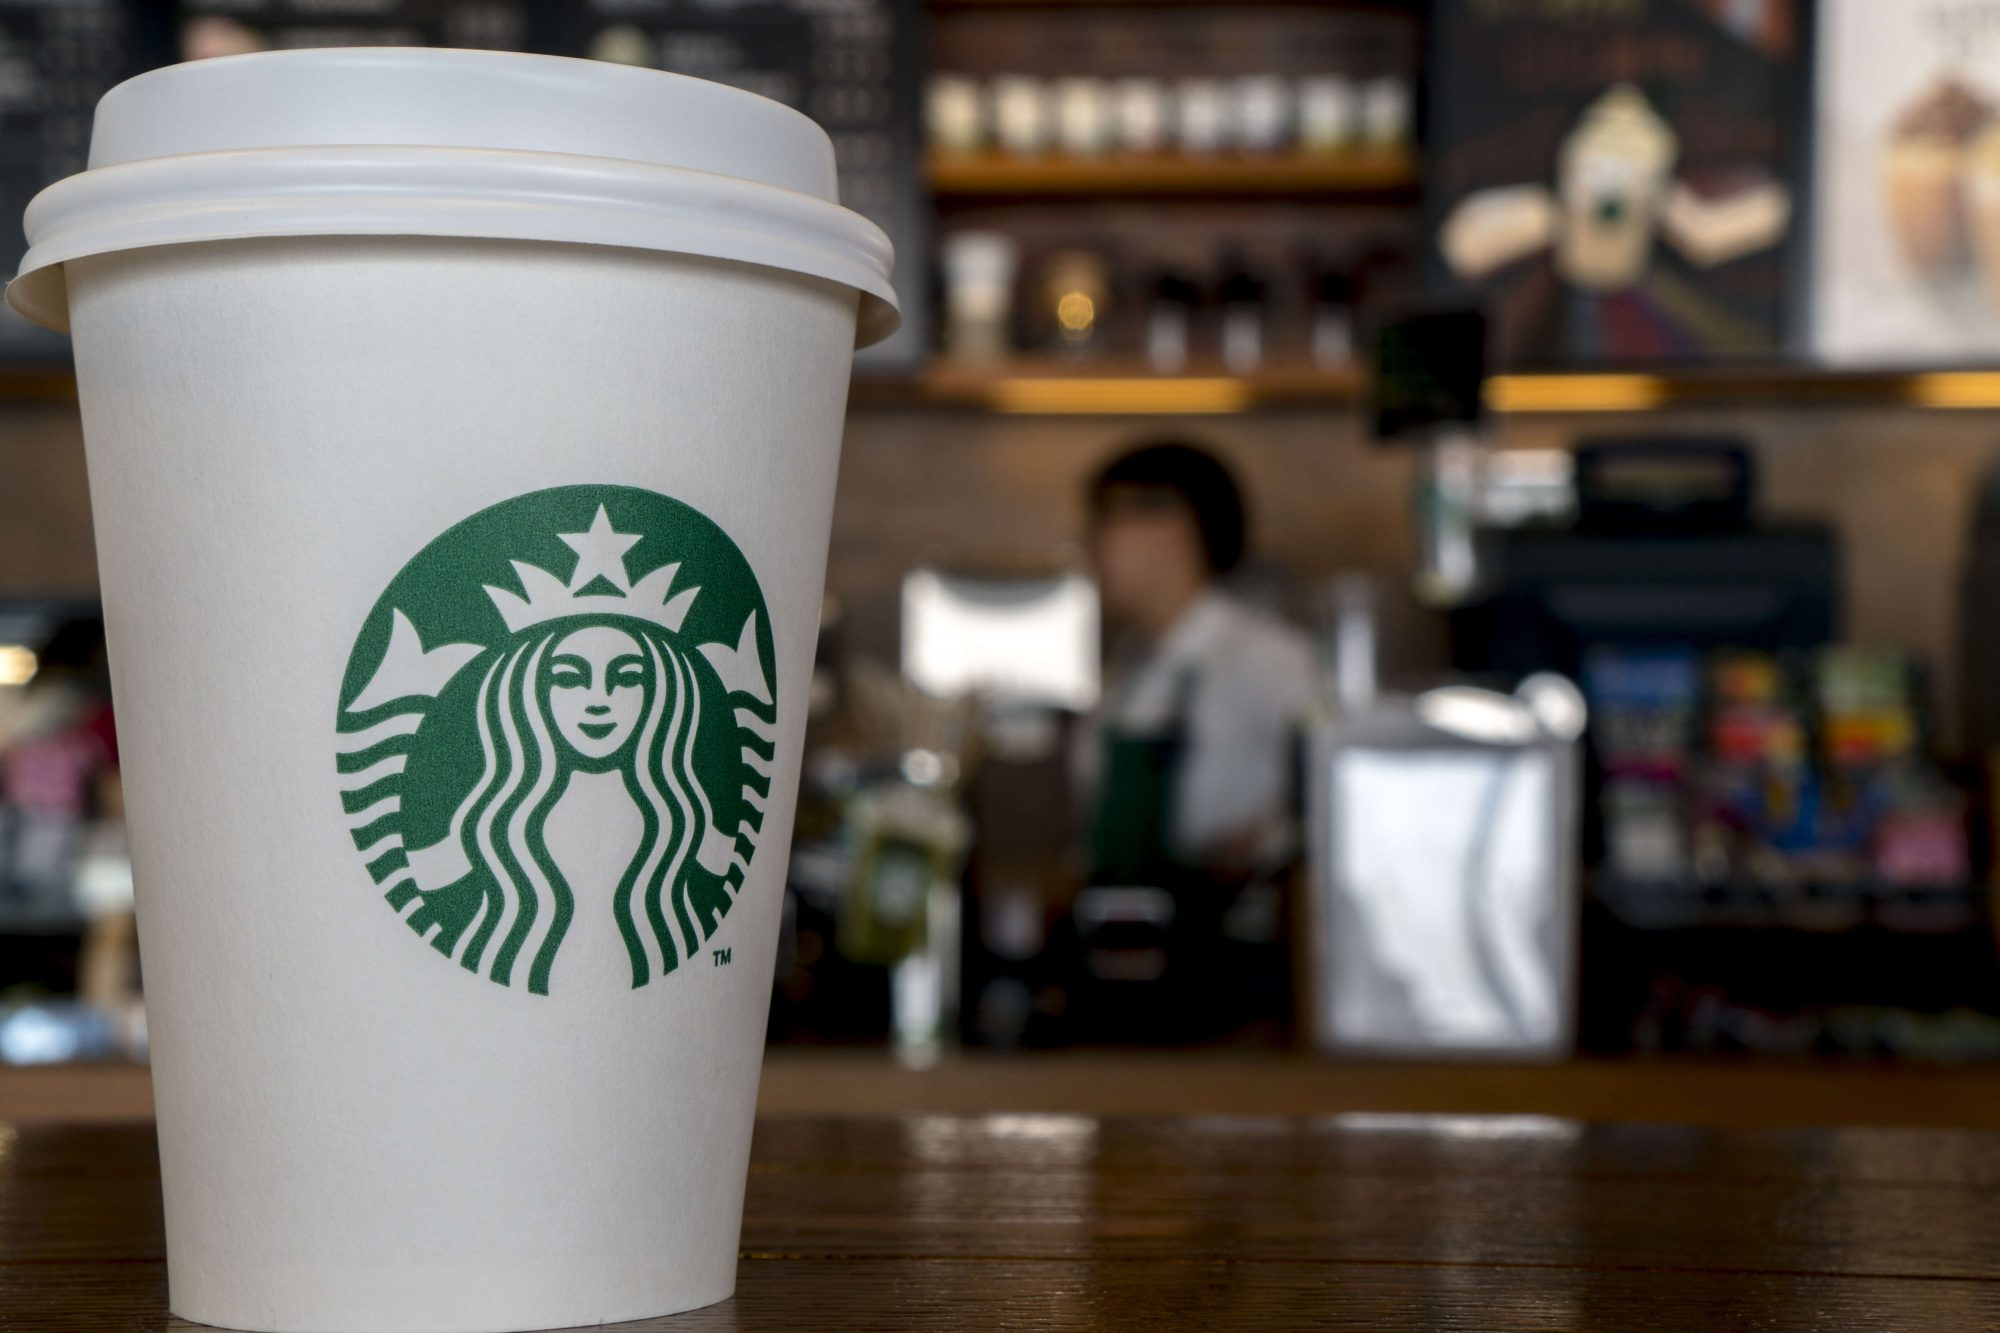 Starbucks Coffee Just Got More Expensive. Here's Why